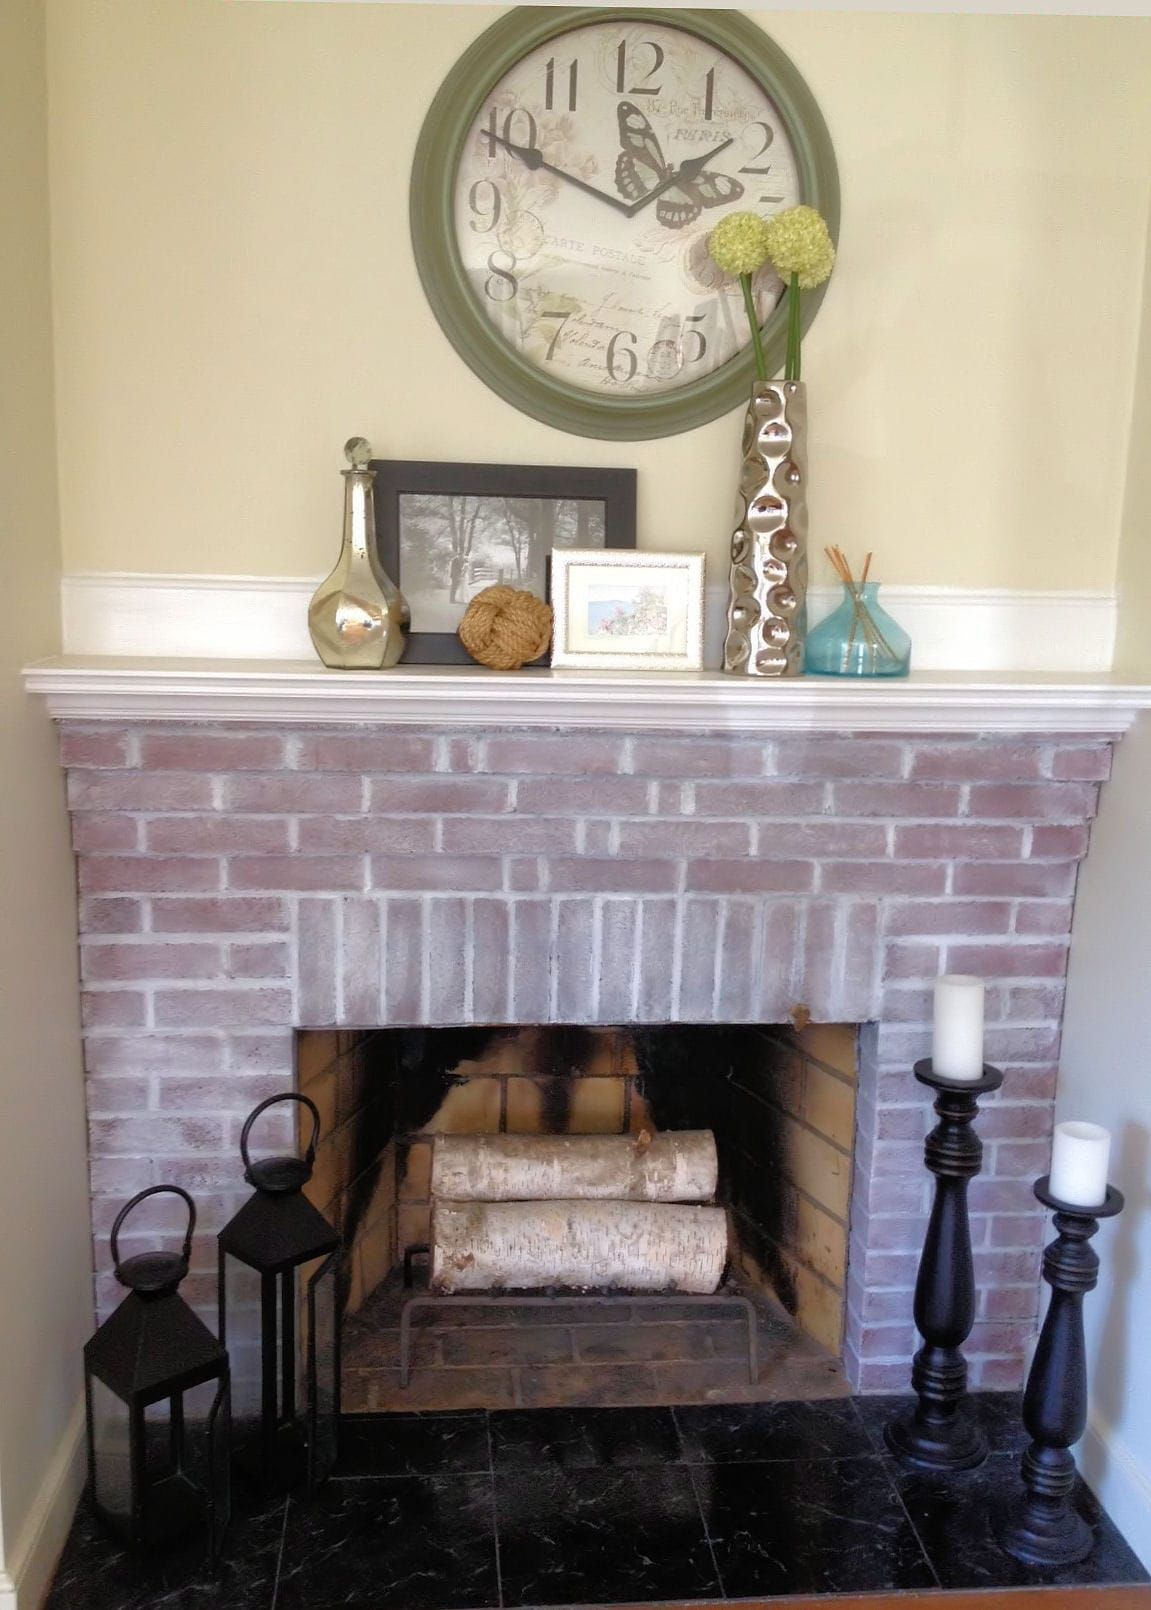 How to Whitewash a Brick Fireplace An Easy Step by Step